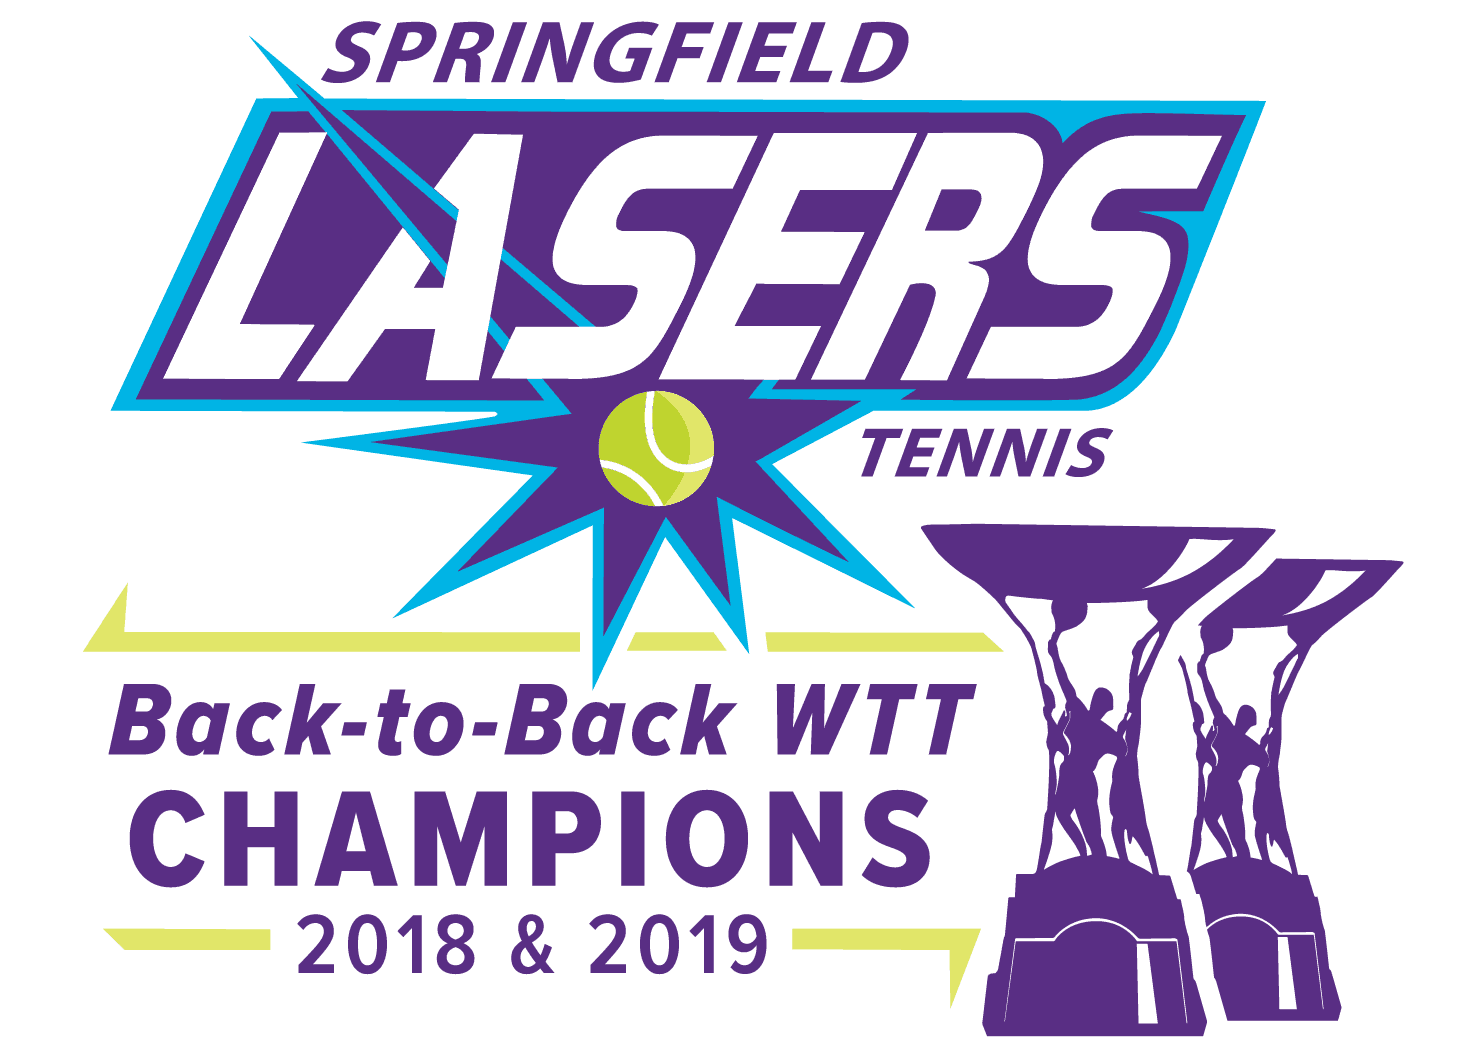 Lasers_B2B Champs Logo_1 Stacked-Trophy